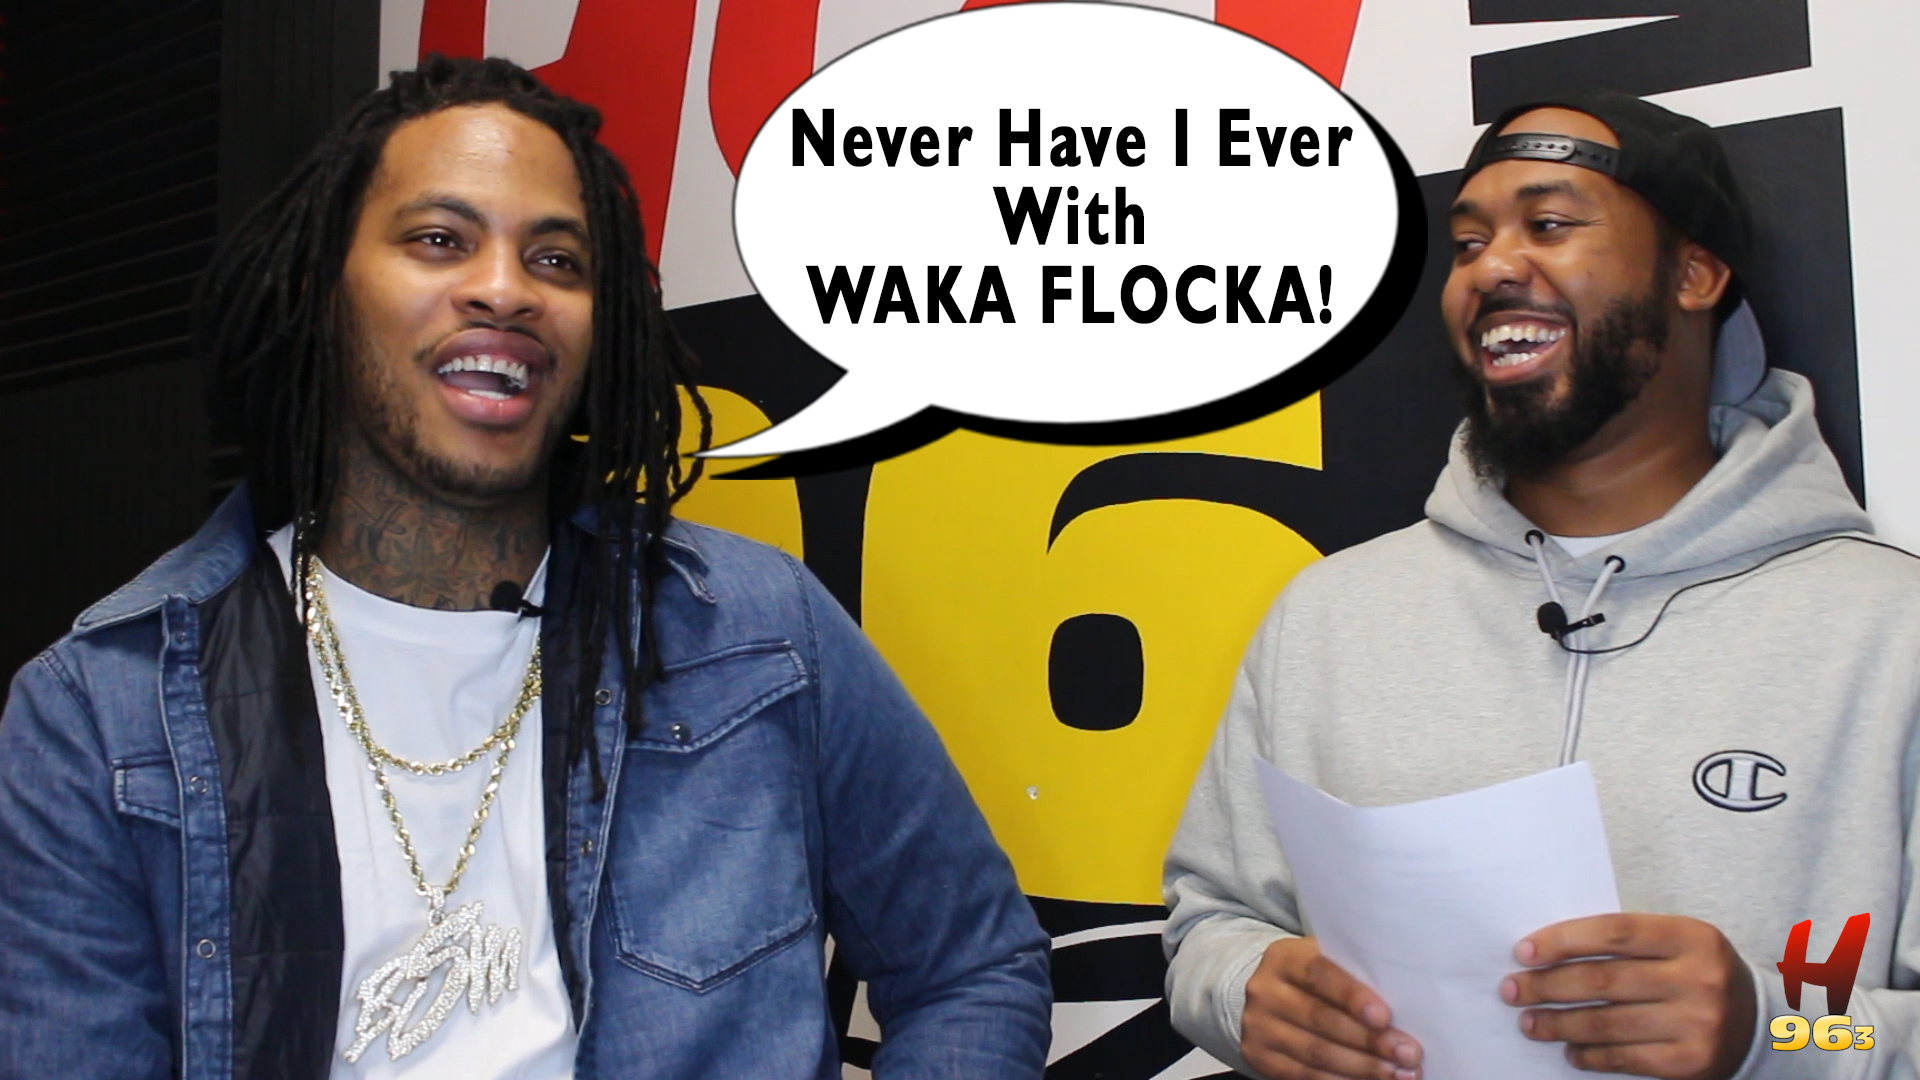 Never Have I Ever - Waka Flocka